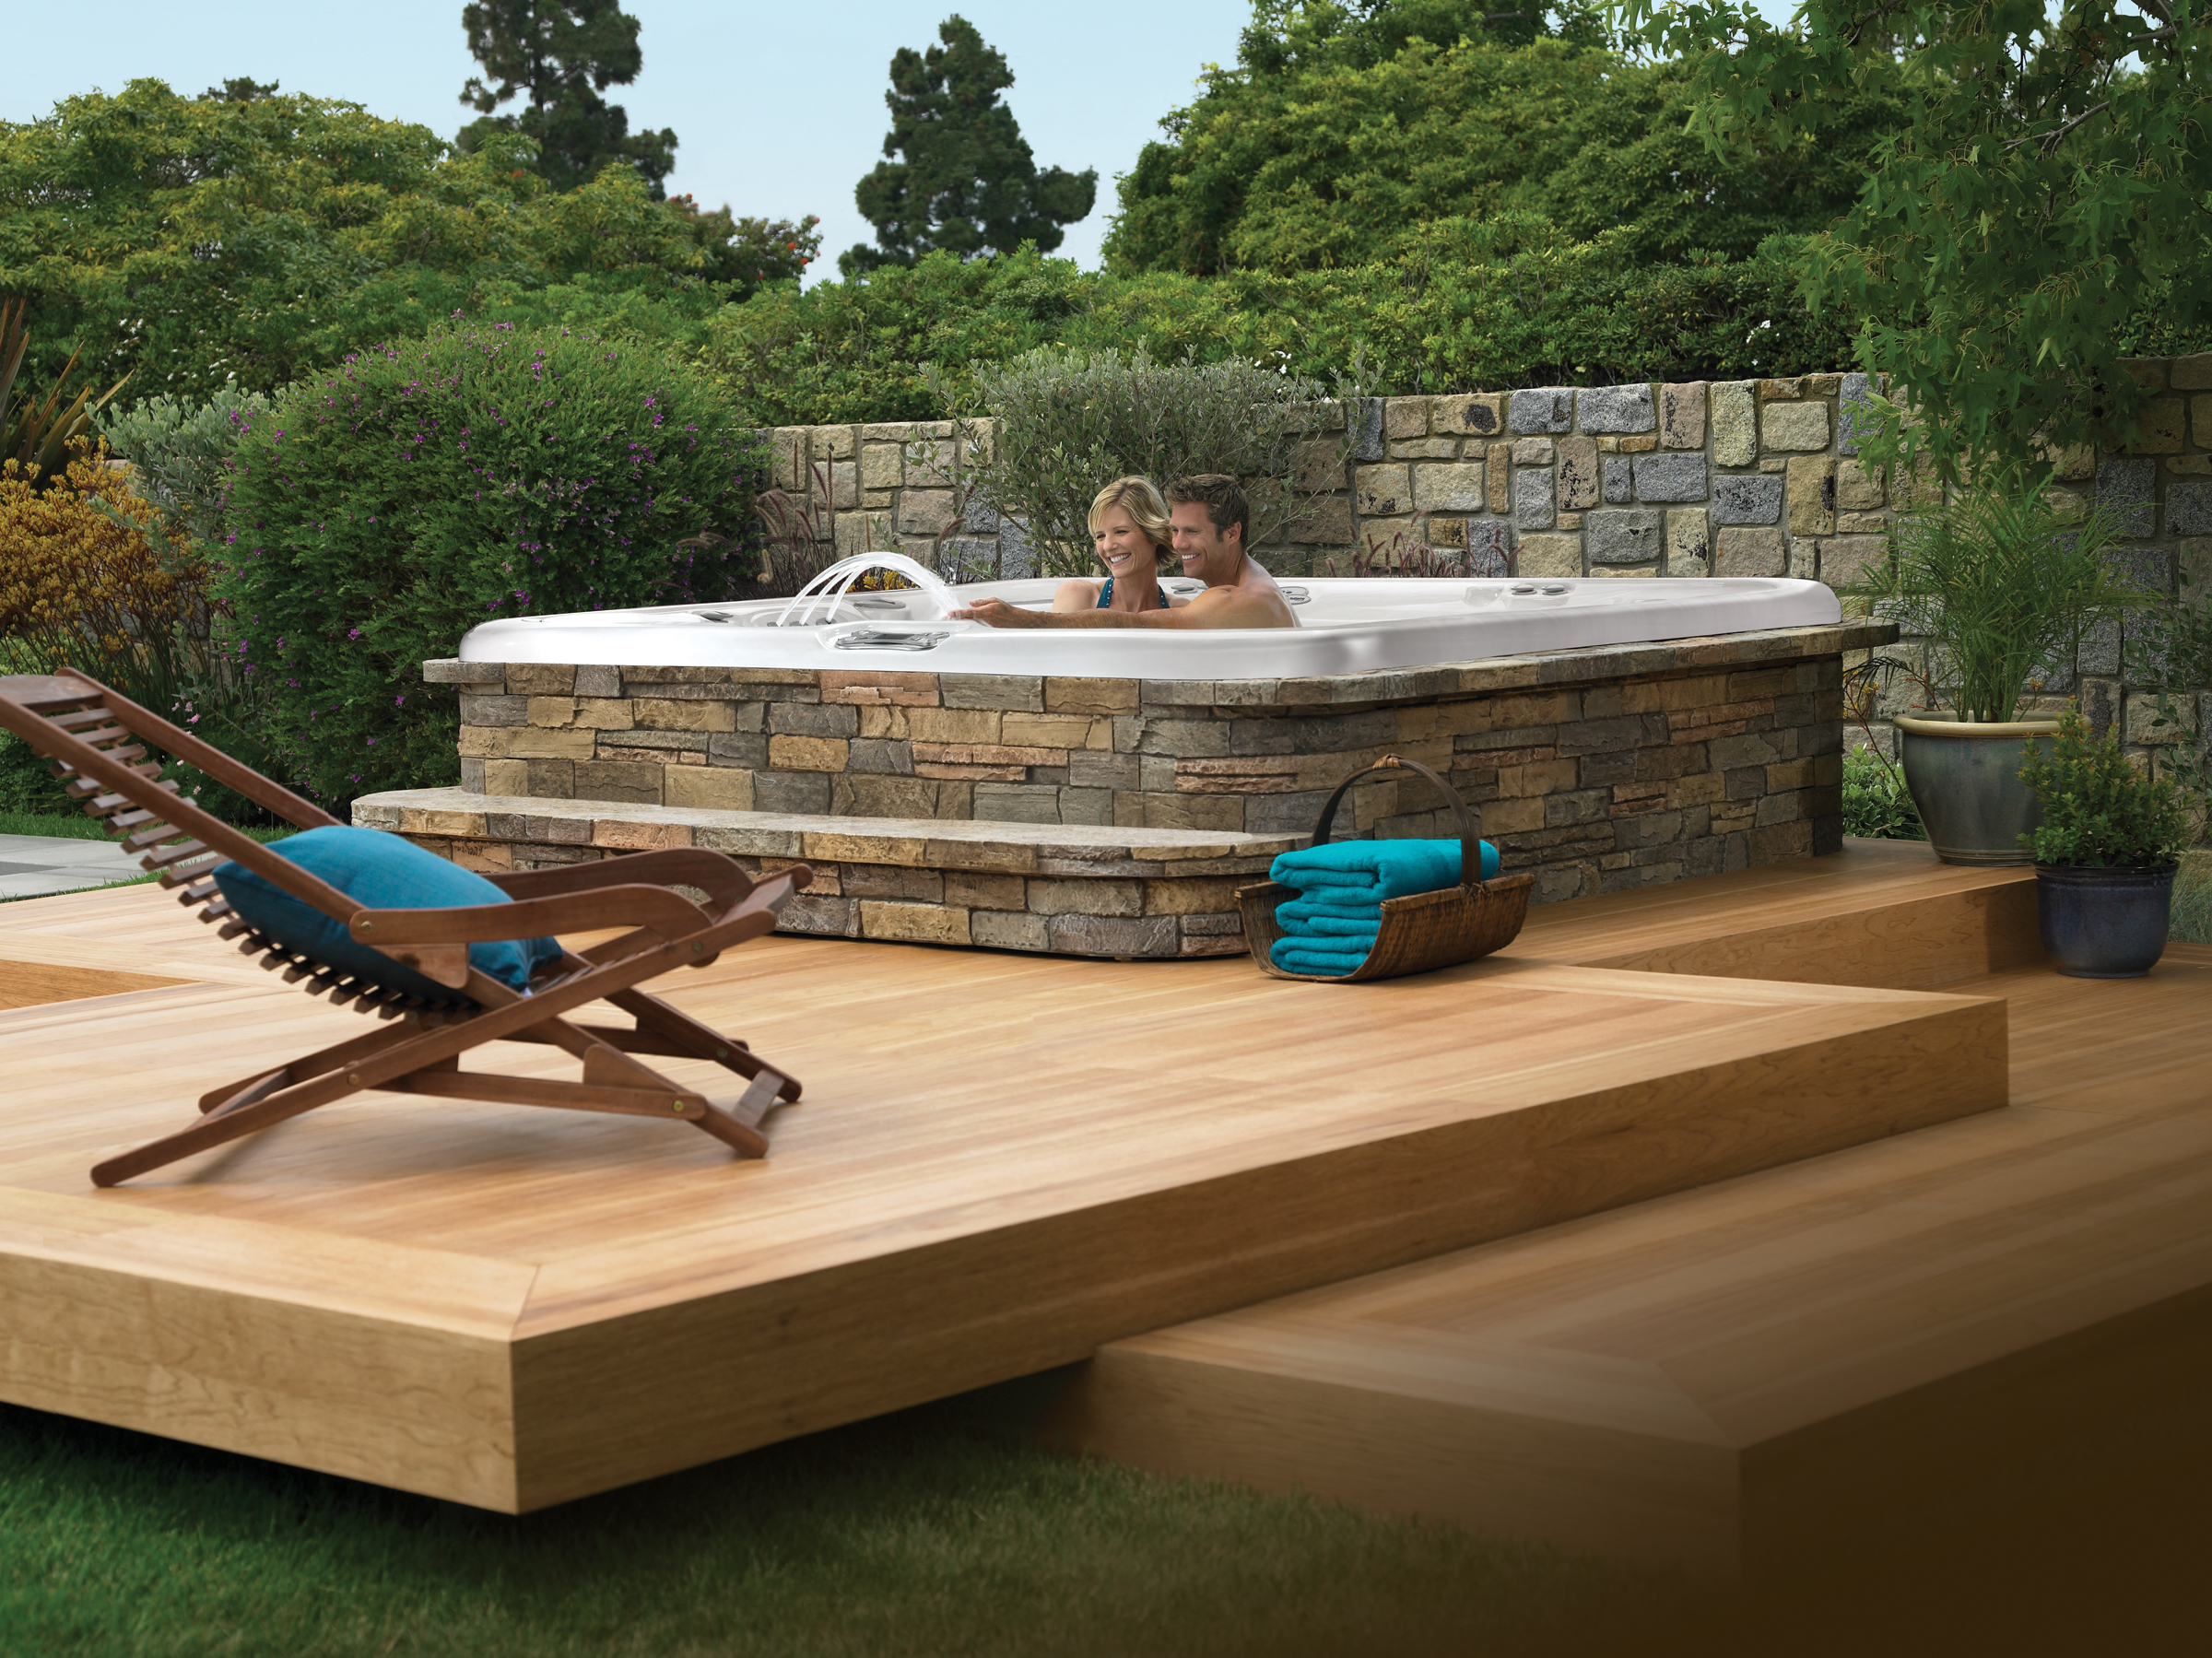 The Perfect Deck For Your Hot Springs Spa